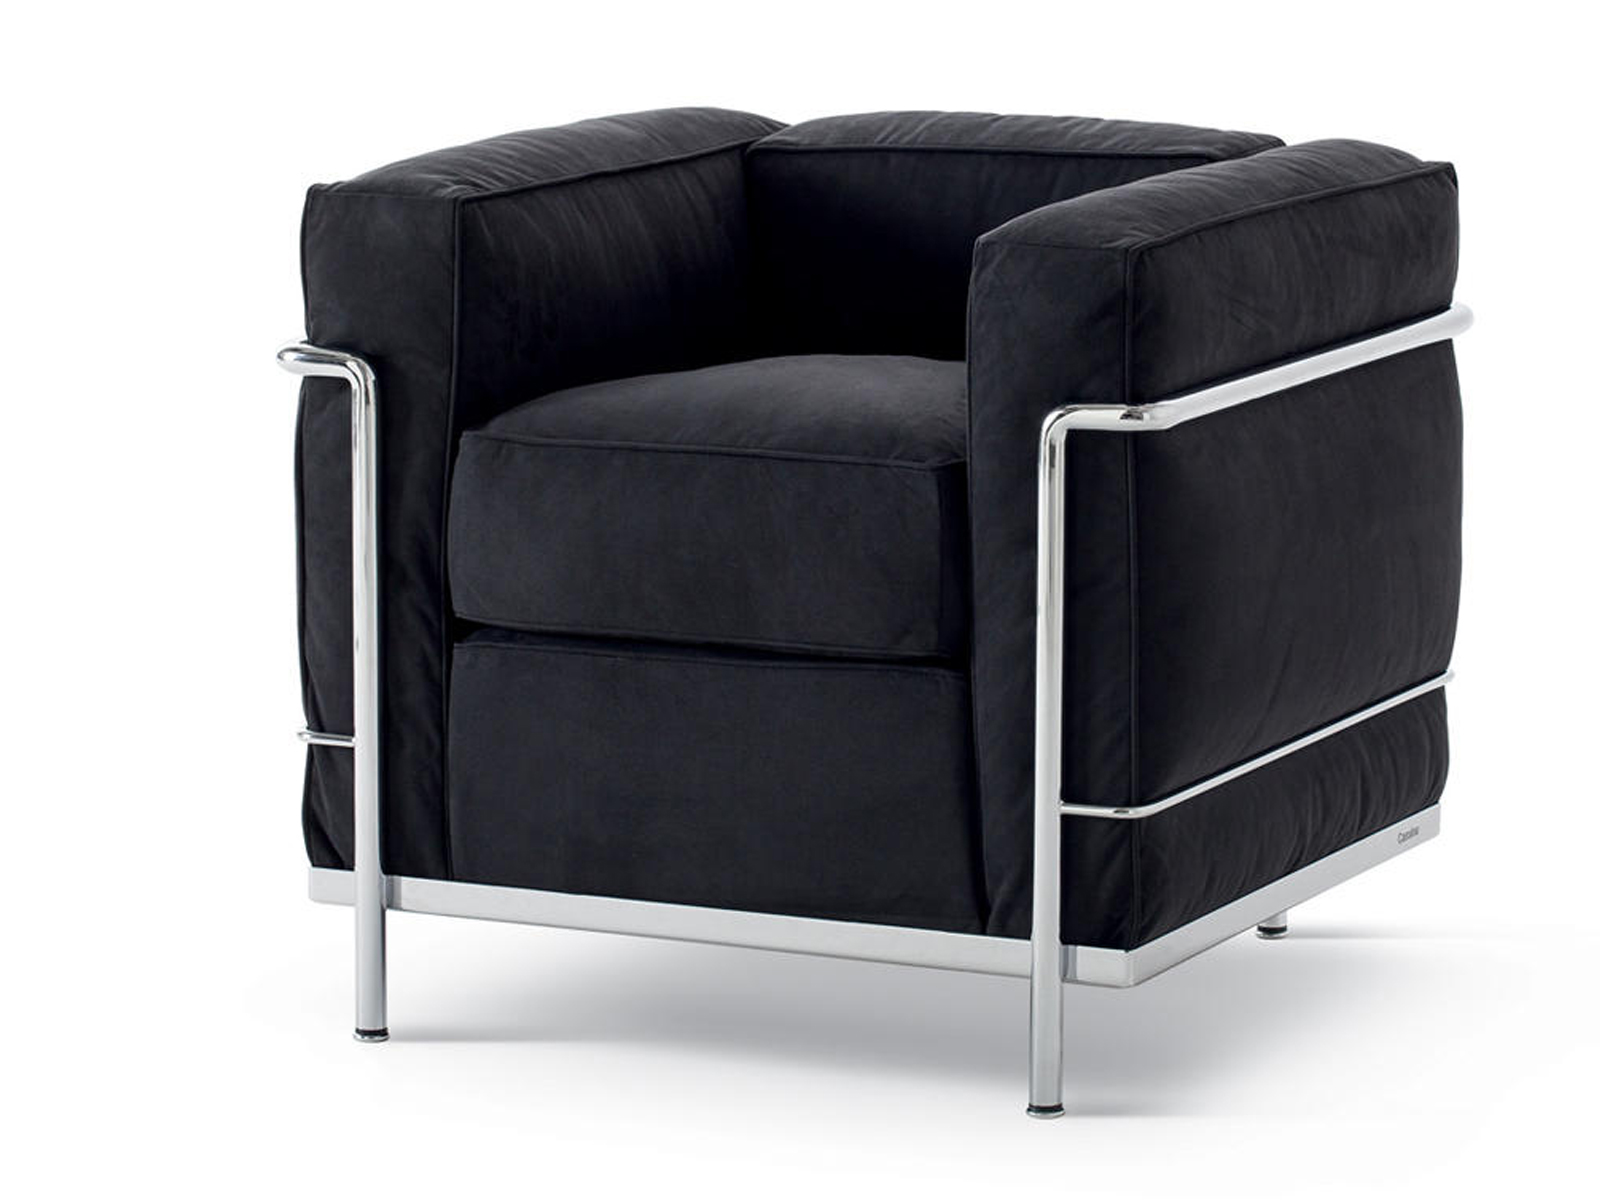 aanschouw de cassina lc familie van le corbusier. Black Bedroom Furniture Sets. Home Design Ideas